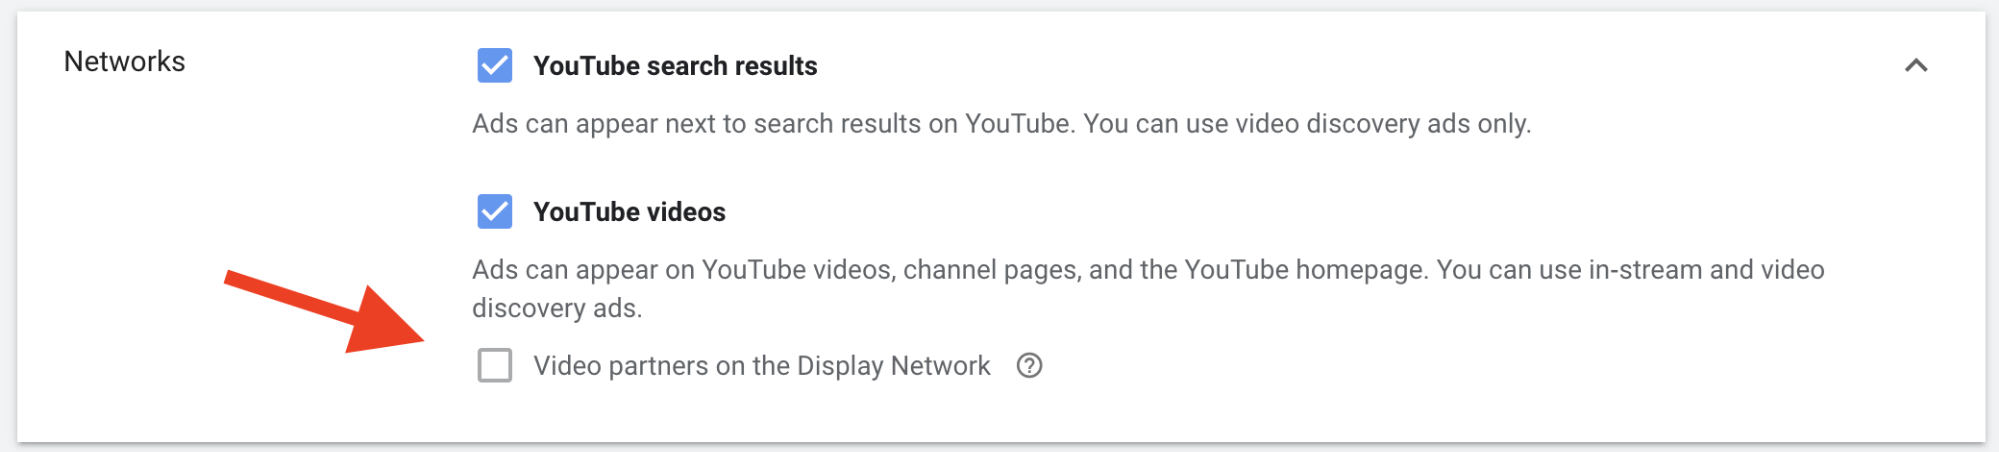 YouTube video ads — Networks checkbox